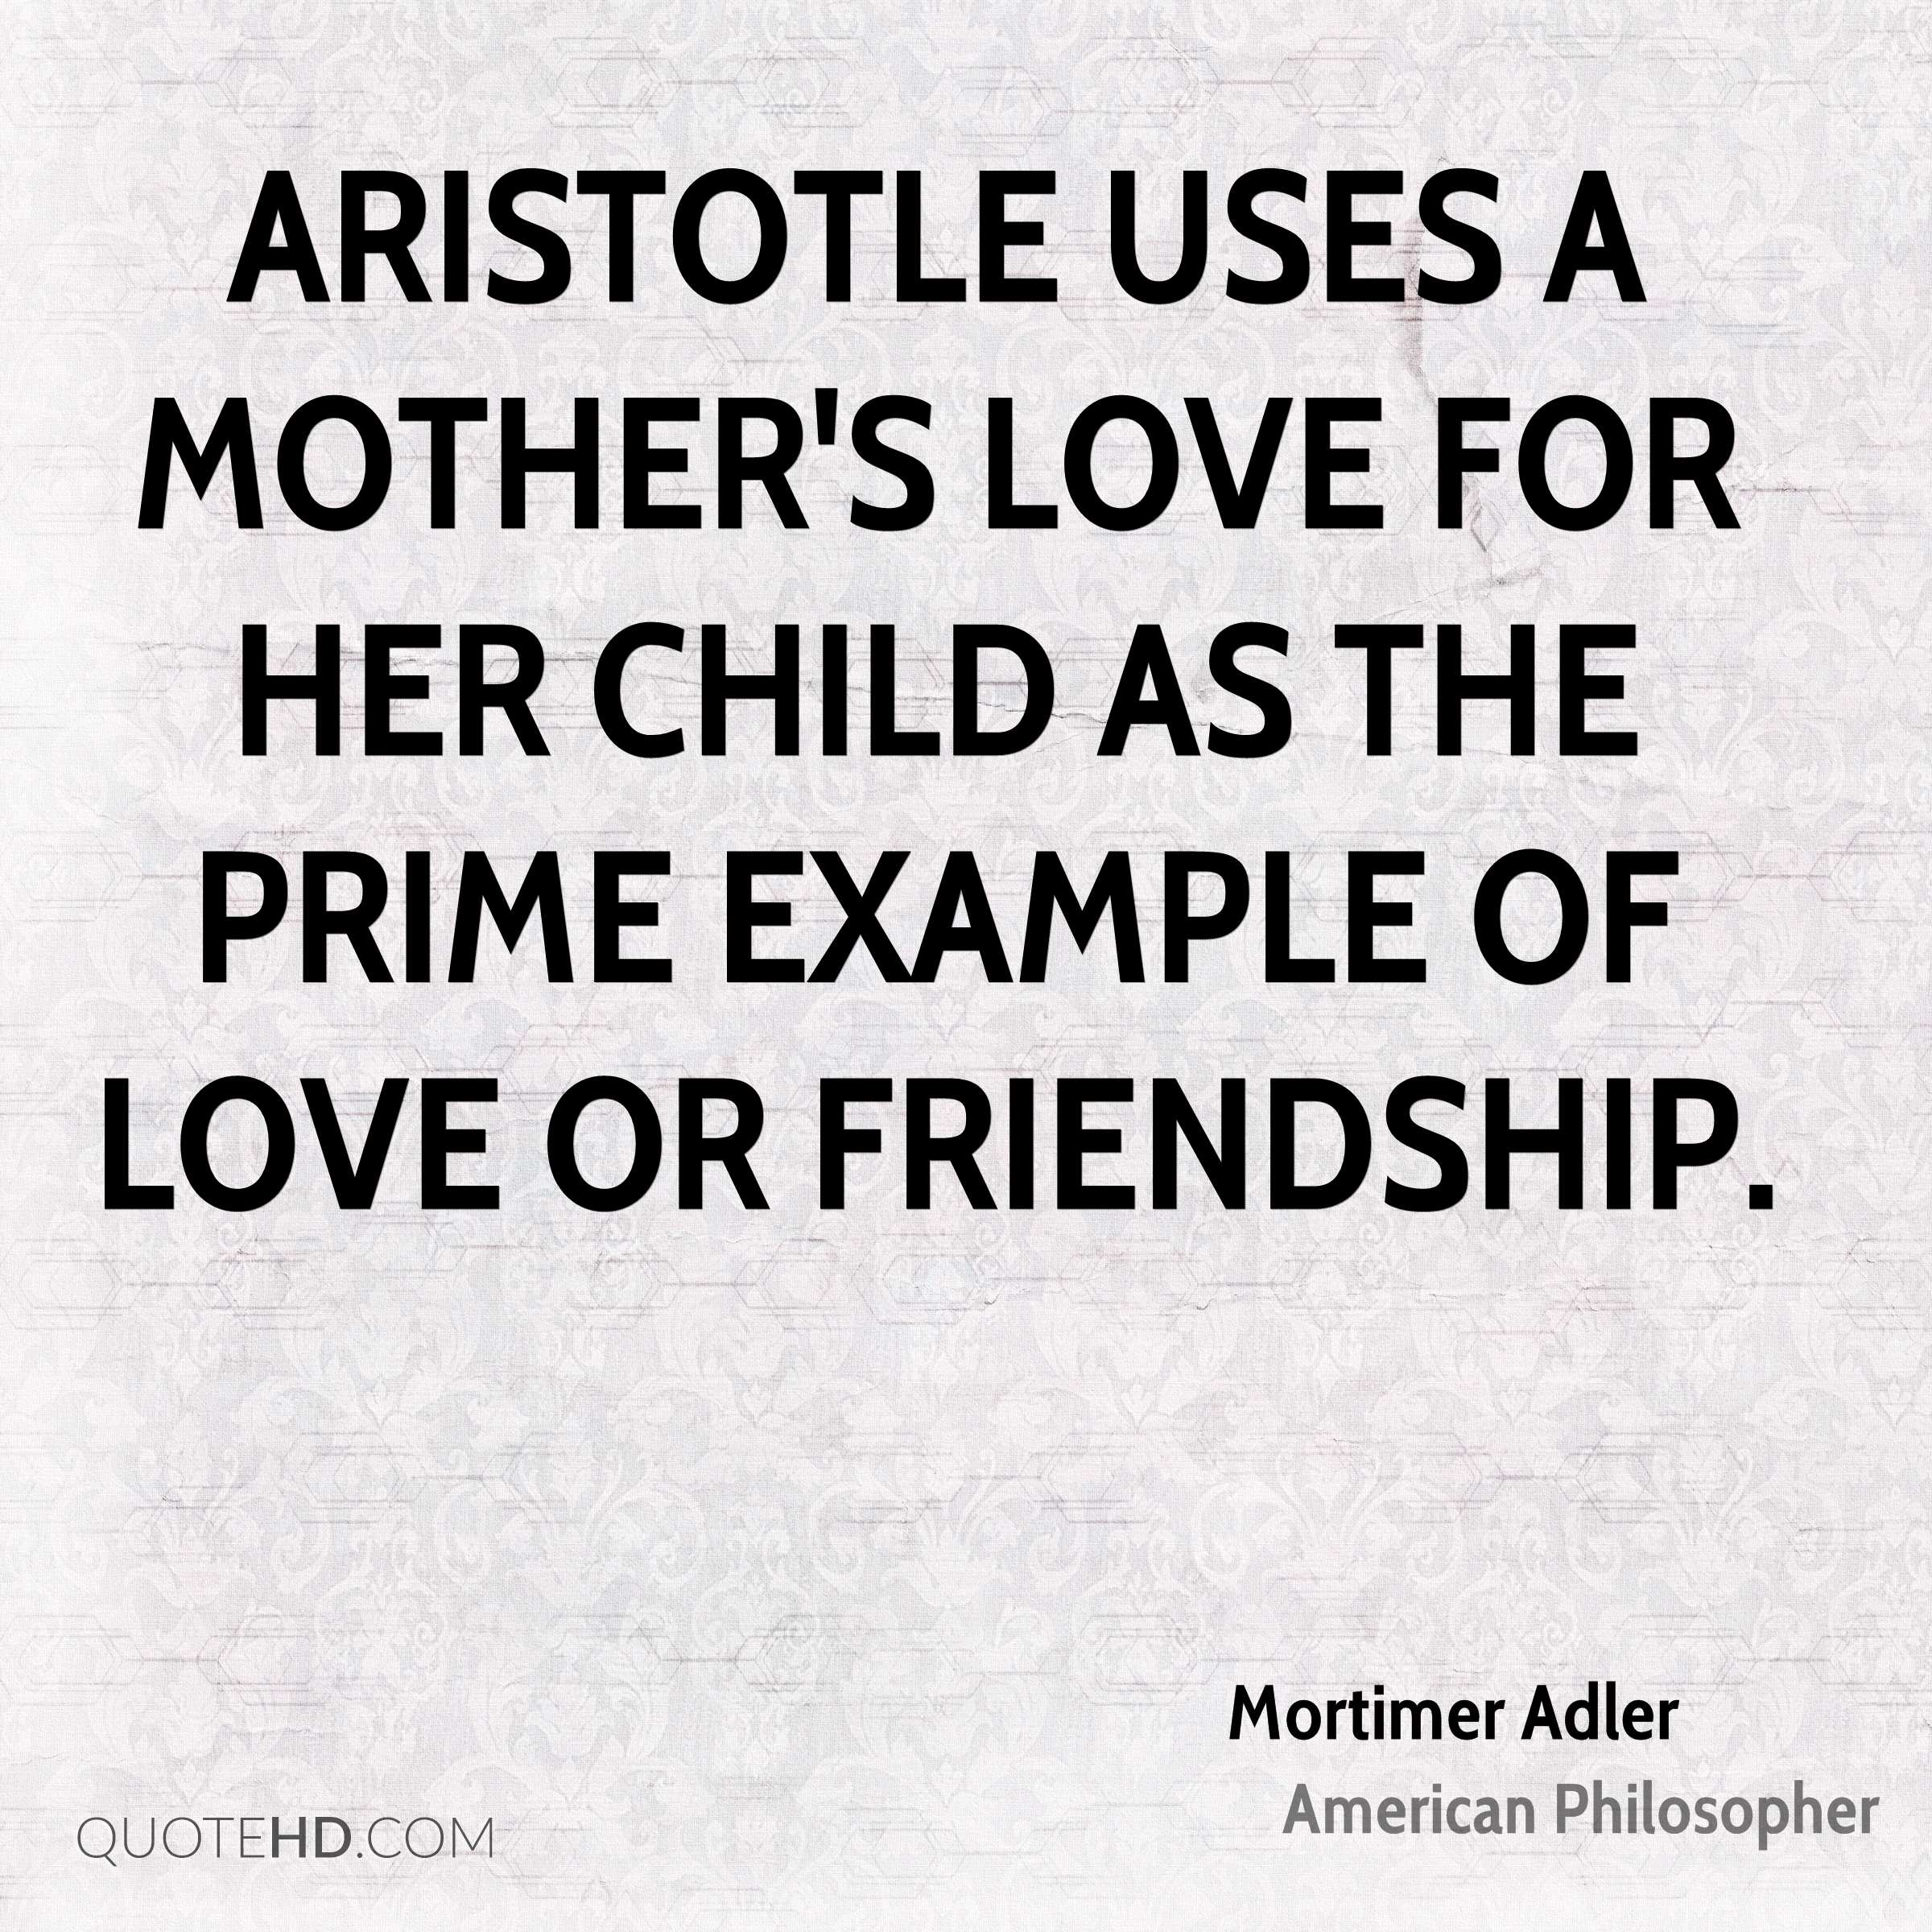 Mothers Love Quotes Mortimer Adler Friendship Quotes  Quotehd